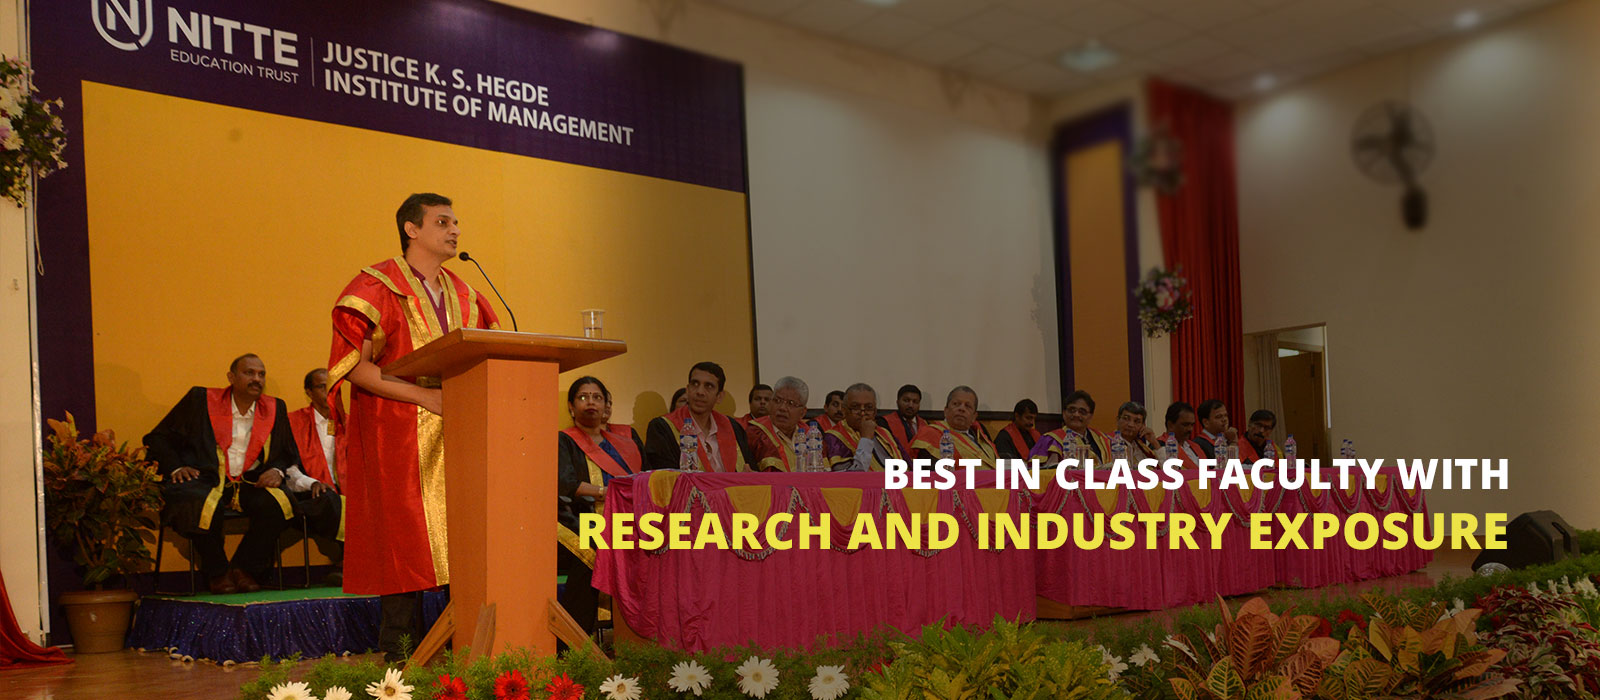 Justice K S Hegde Institute of Management